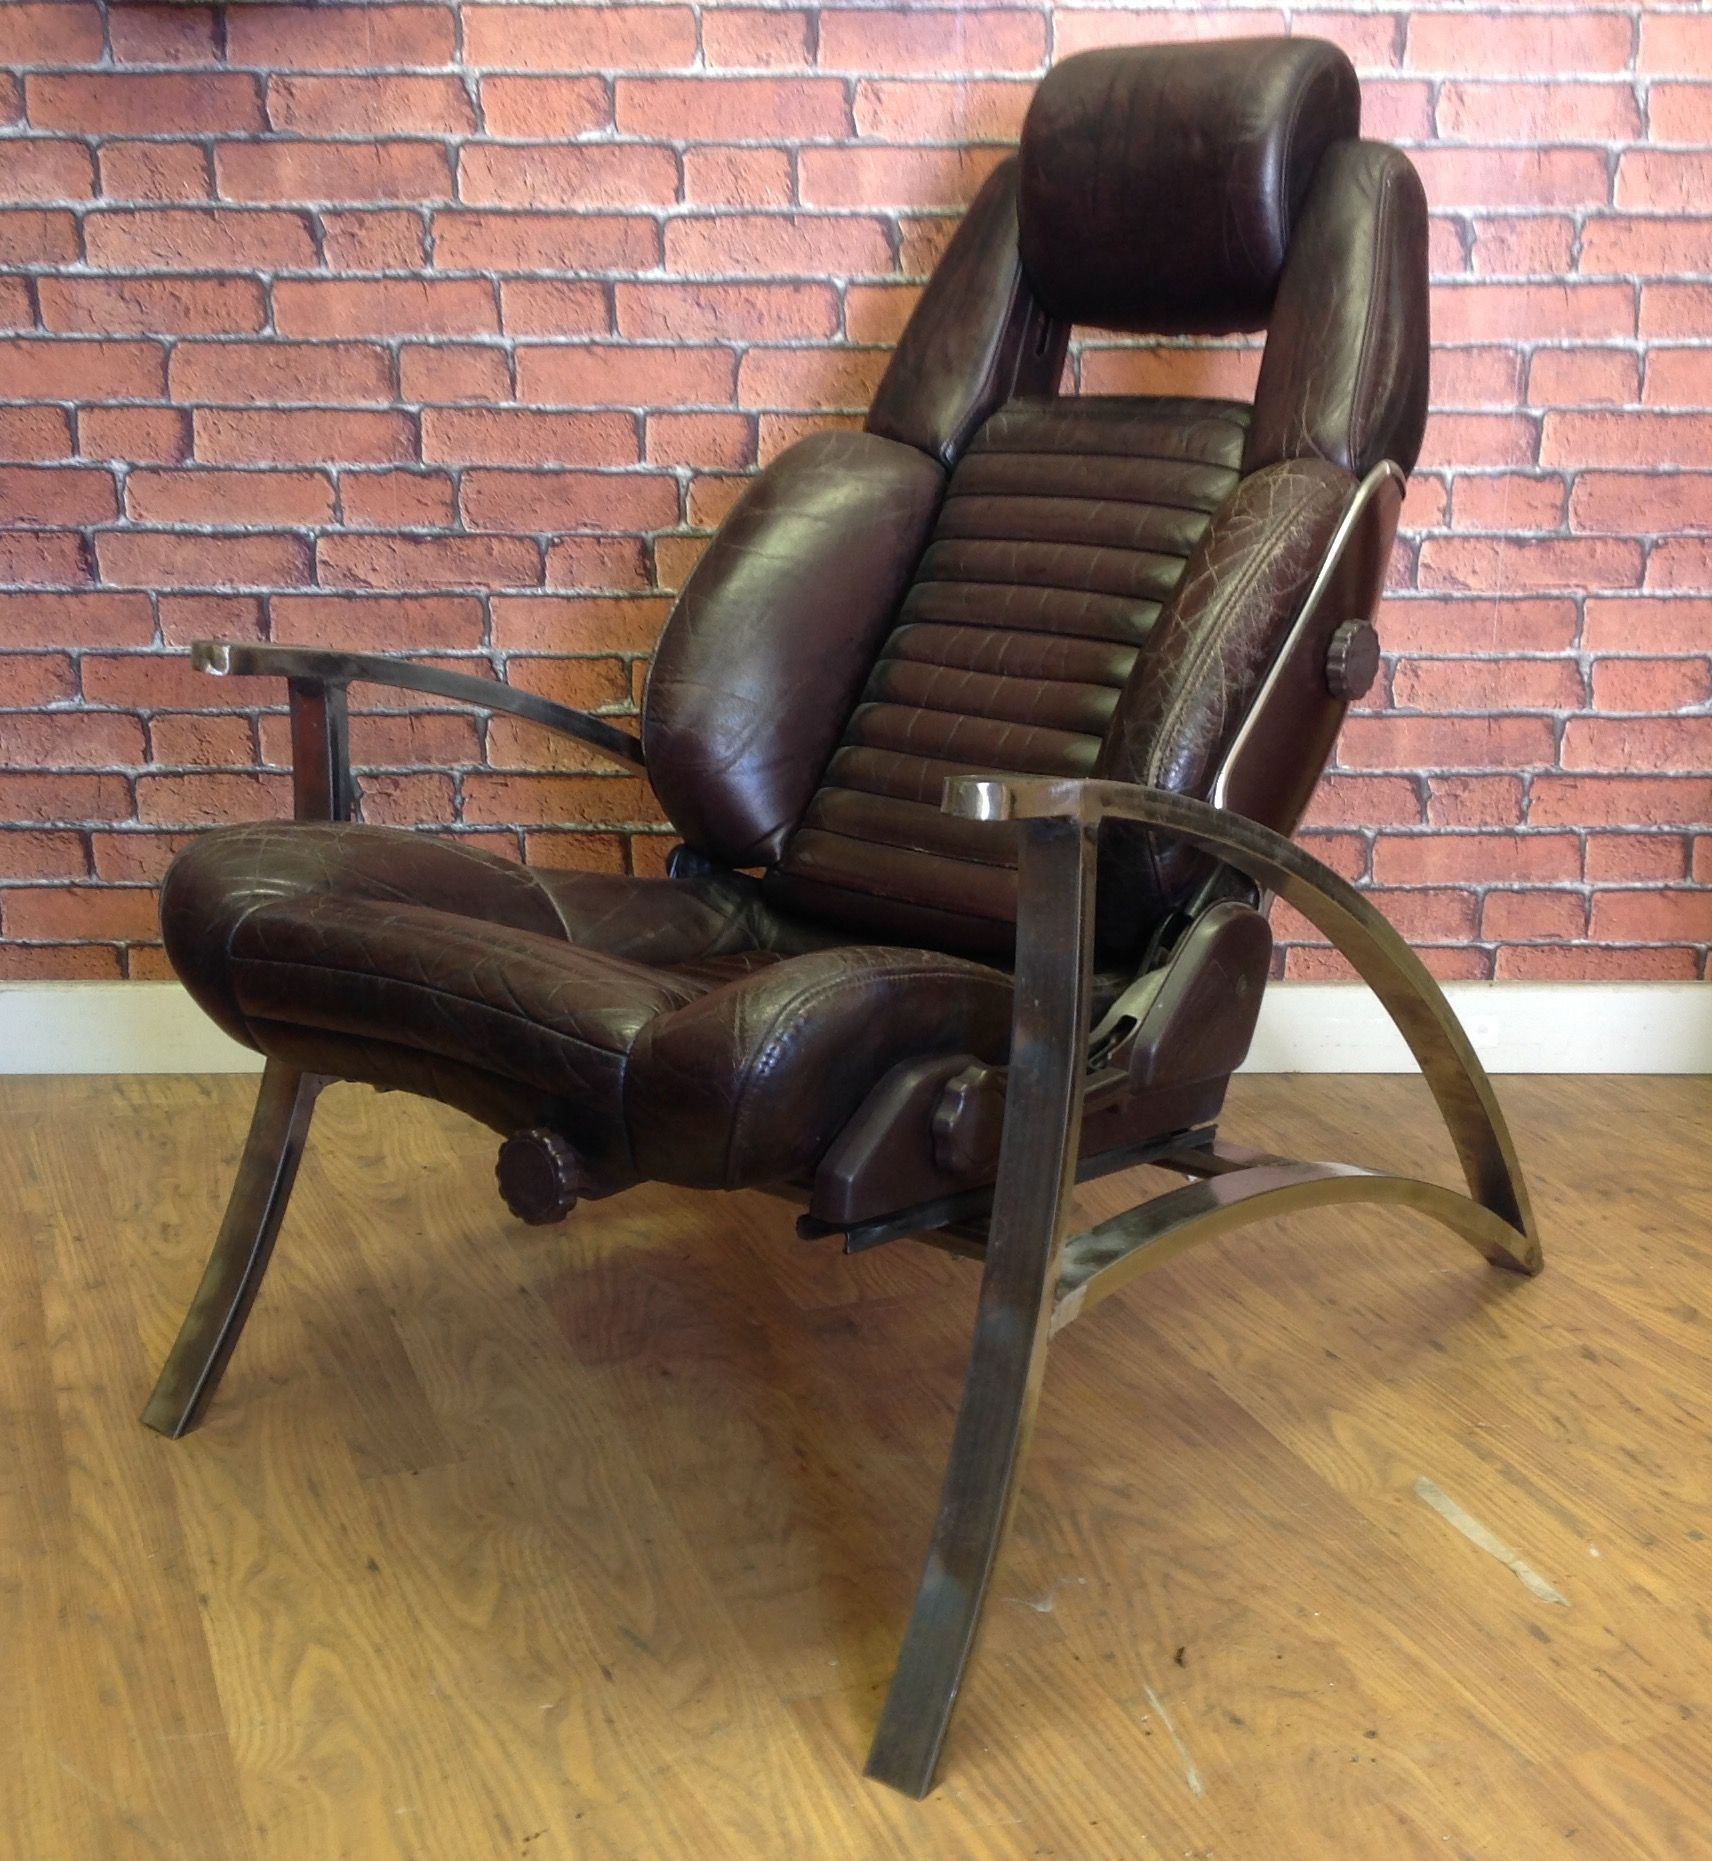 Deco influence curved frame Toyota car seat chair